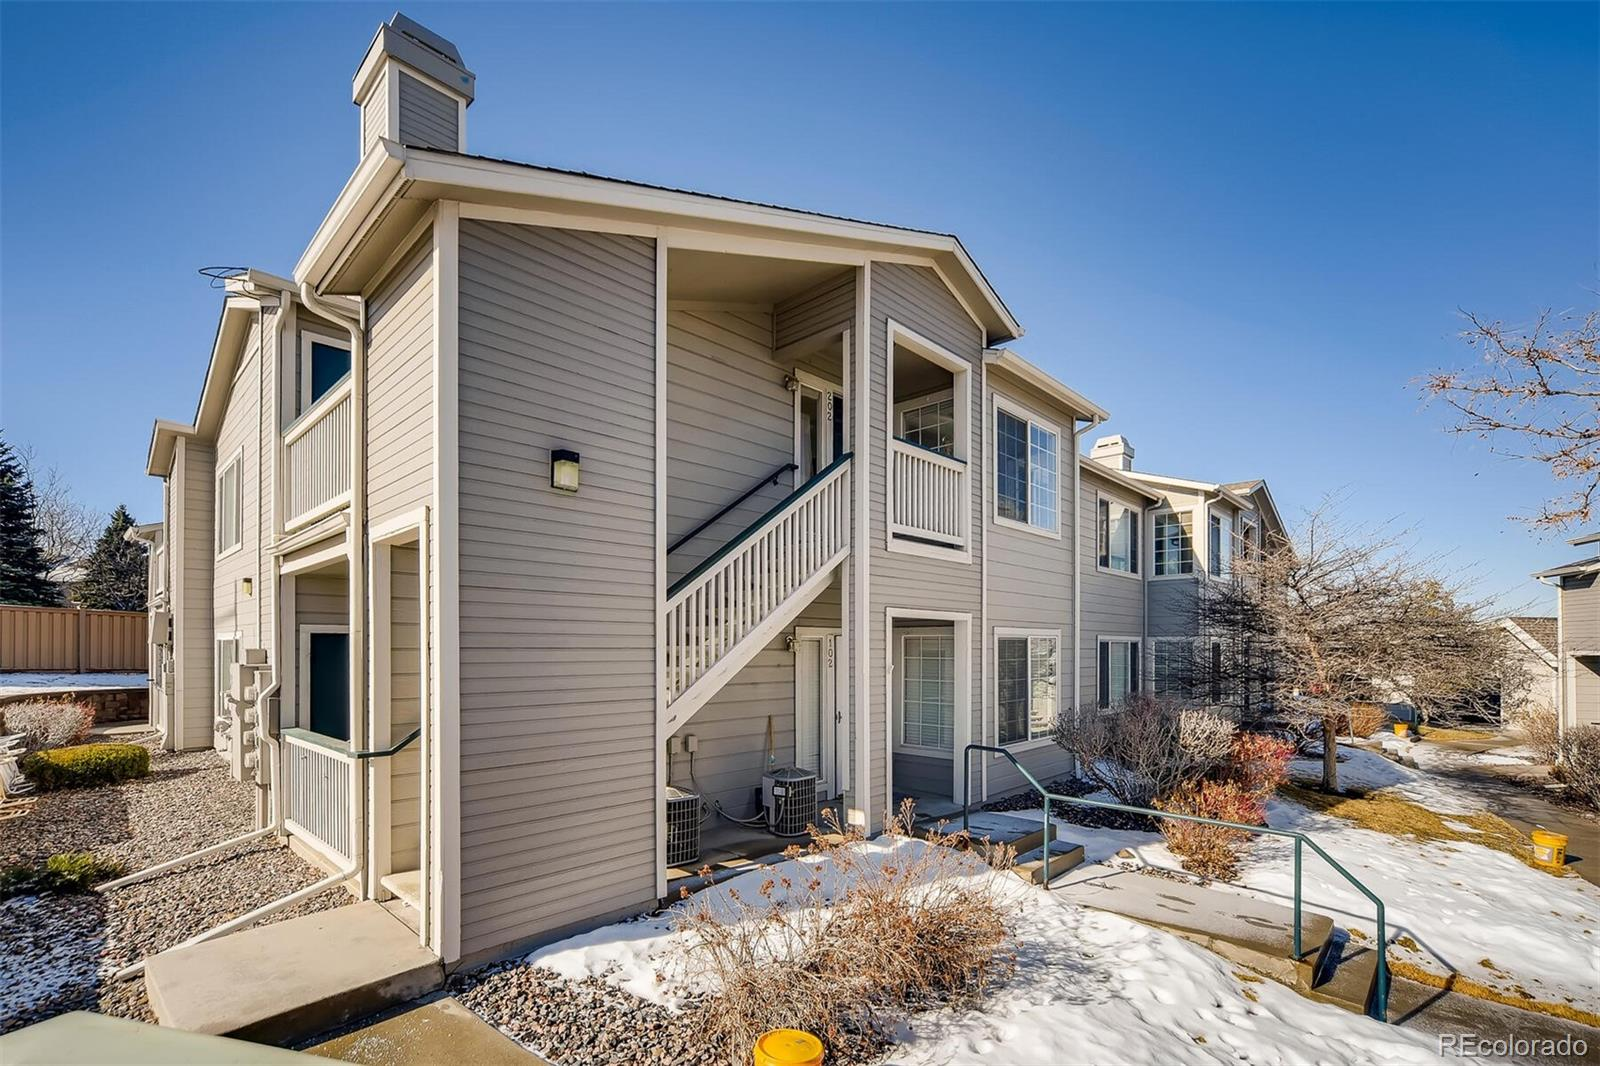 LOCATION, LOCATION, LOCATION! Amazing 2 bed, 2 bath condo in the heart of Highlands Ranch. Dine-in kitchen with plenty of natural light from the large windows. Enjoy the vaulted ceilings and open living room with sliding doors to your personal covered balcony.  Private master retreat with a large walk-in closet. Second bedroom is spacious with double closets. Amazing amount of storage in the unit. Laundry in hall closet. Walking distance to shopping, restaurants, parks, bike trails and easy access to C-470. Enjoy the great amenities in Canyon Ranch-lots of parking, pool, hot tub, clubhouse and fitness area. Hurry this won't last long.